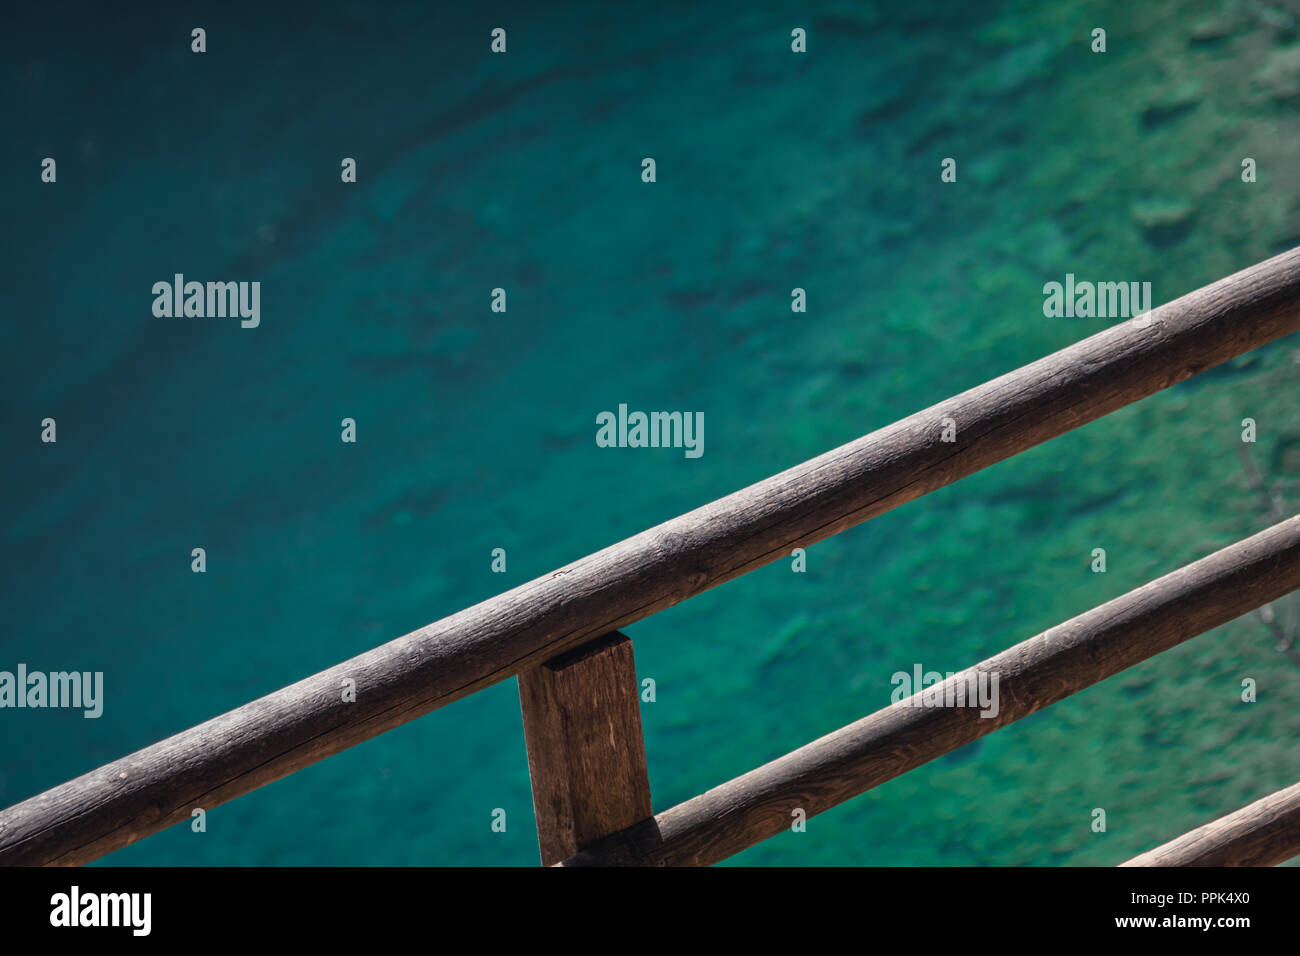 Wooden diagonal fence with blue lake in the background. Clear water, so you can see the stones on the ground. Minimalistic clean shot. - Stock Image